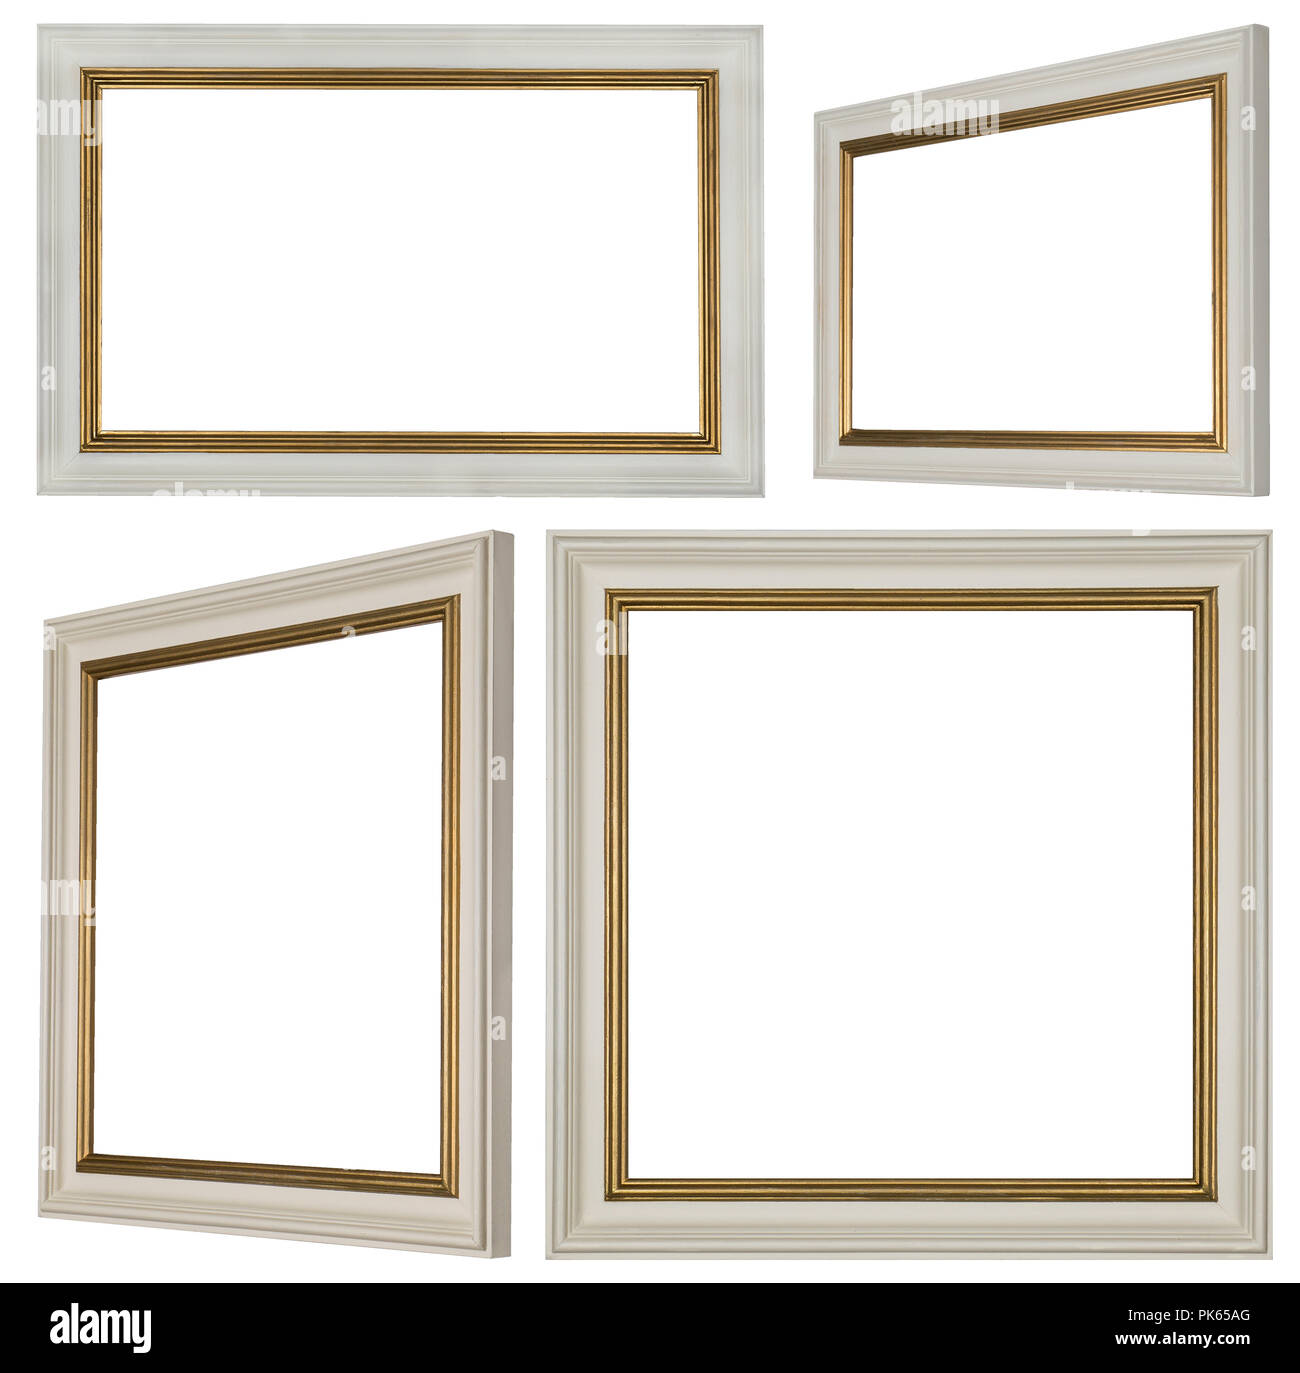 White and golden profile painted rectangular and square picture ...